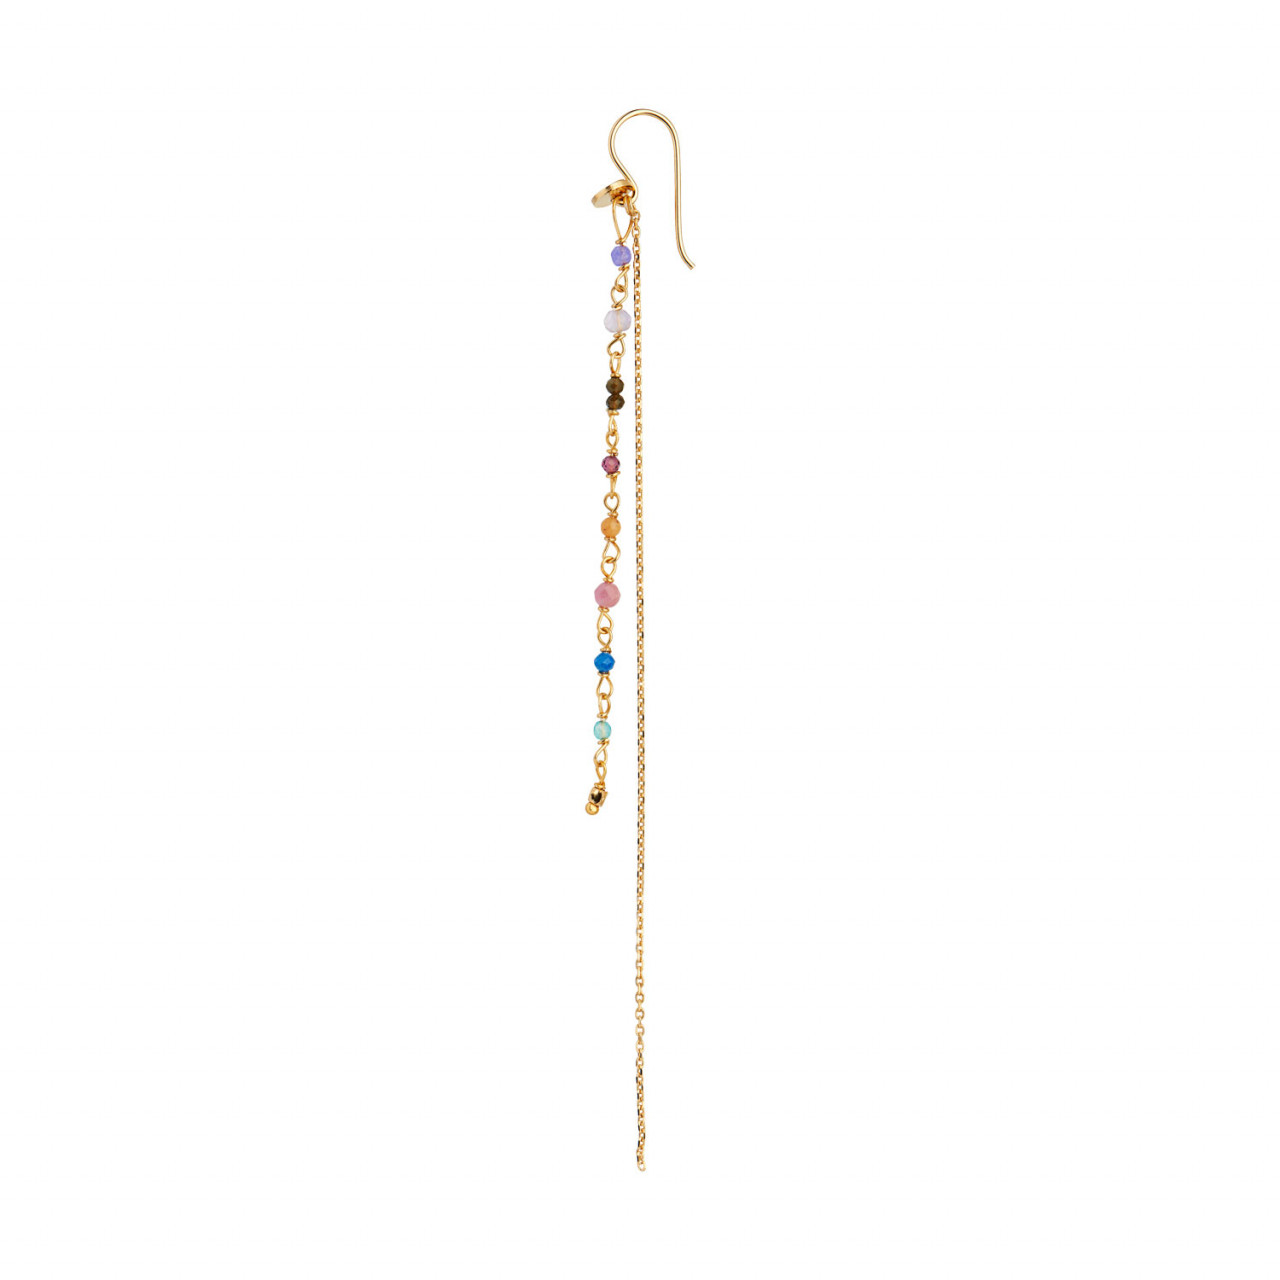 Petit Gemstones with Long Chain Earring Gold - Berry Mix